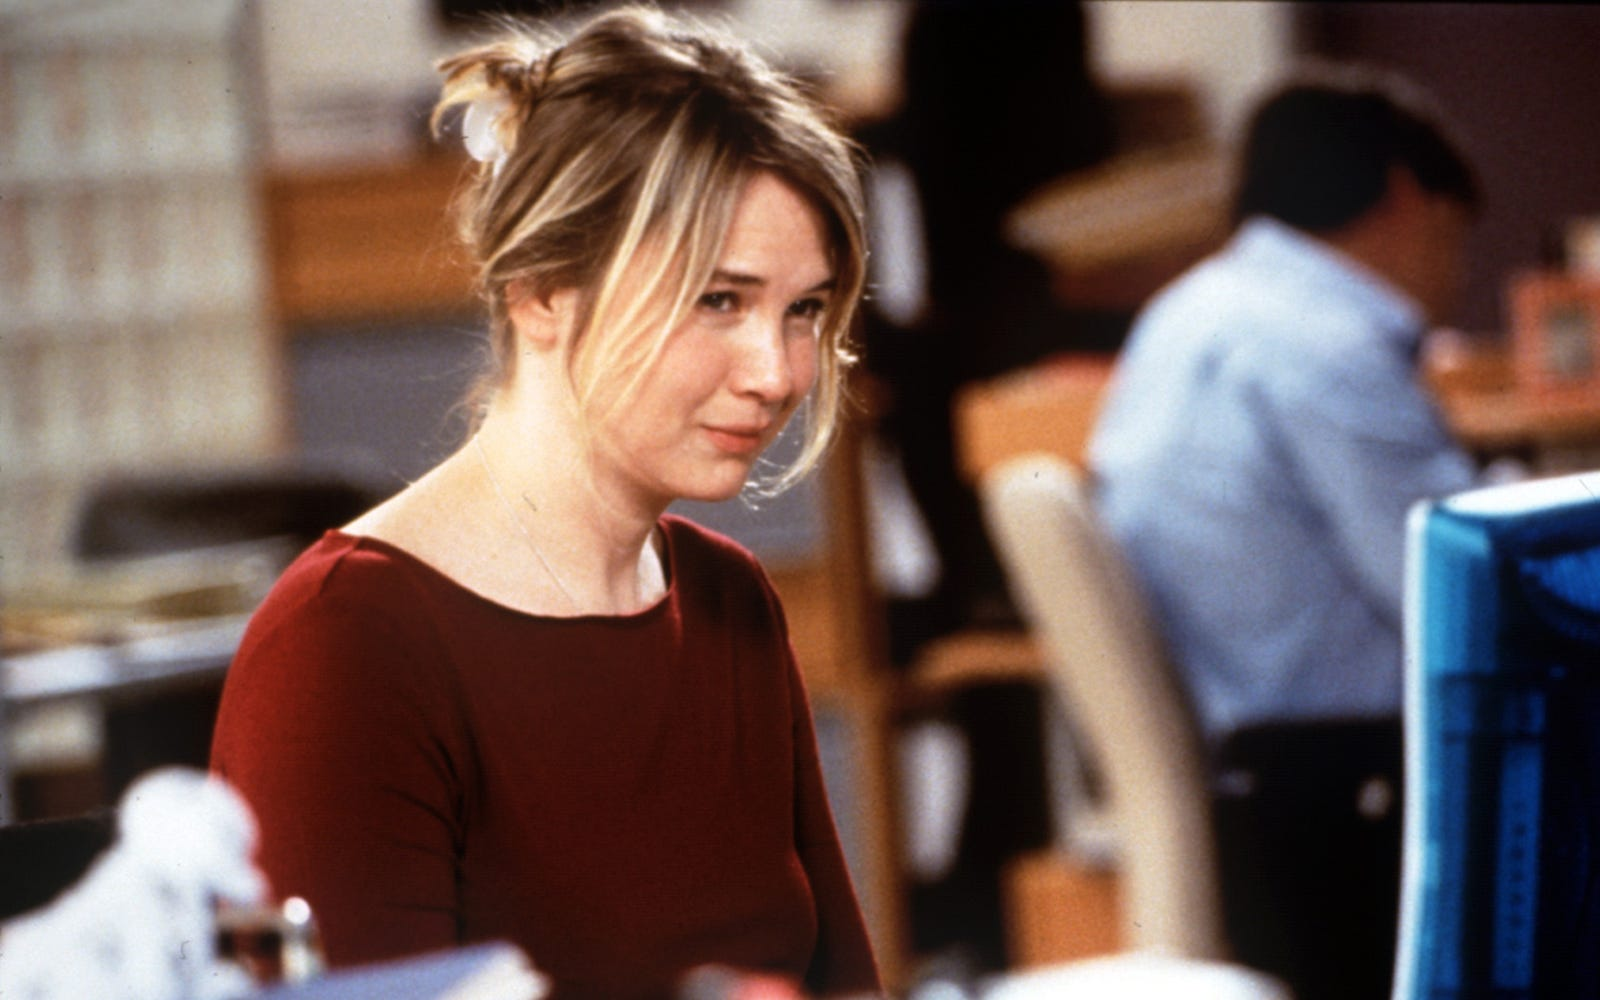 https://www.gannett-cdn.com/indepth-static-assets/uploads/master/7049628002/f4bd0e3c-e5a4-488f-a78a-93380fcc3a2d-bridget-jones-desktop.jpg